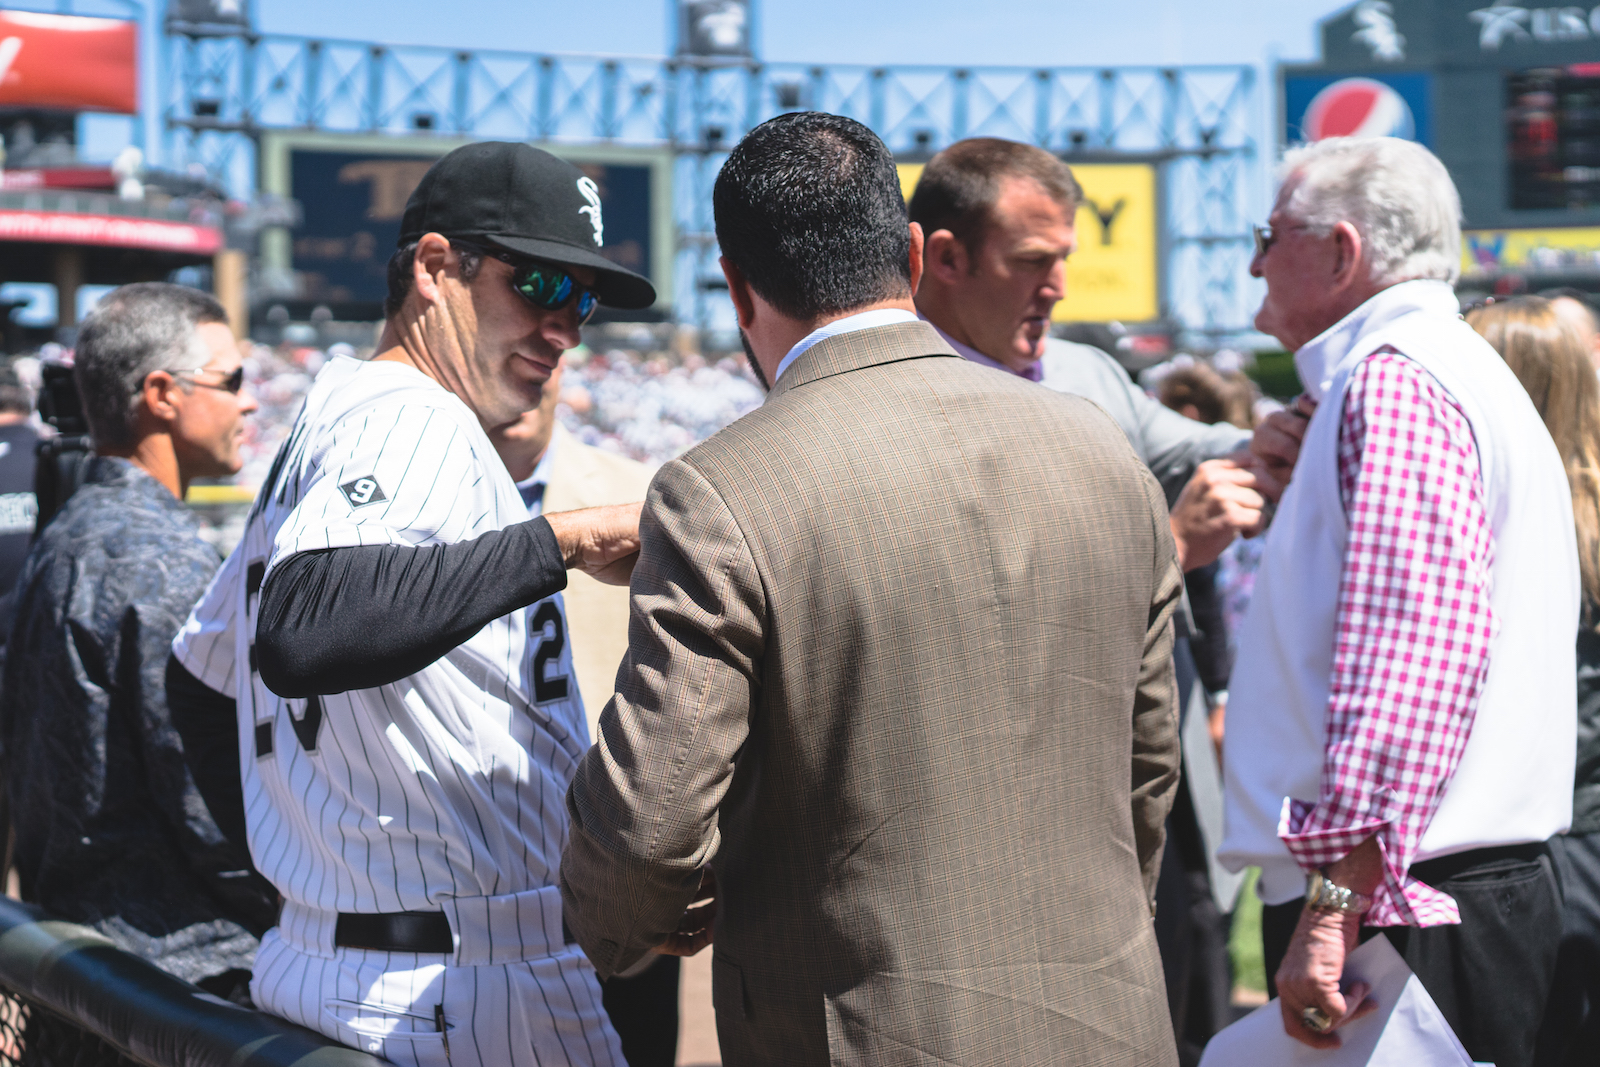 Something you wouldn't normally see... Robin Ventura fixing Ozzie Guillén's button while Jim Thome fixes Hawk's mic.